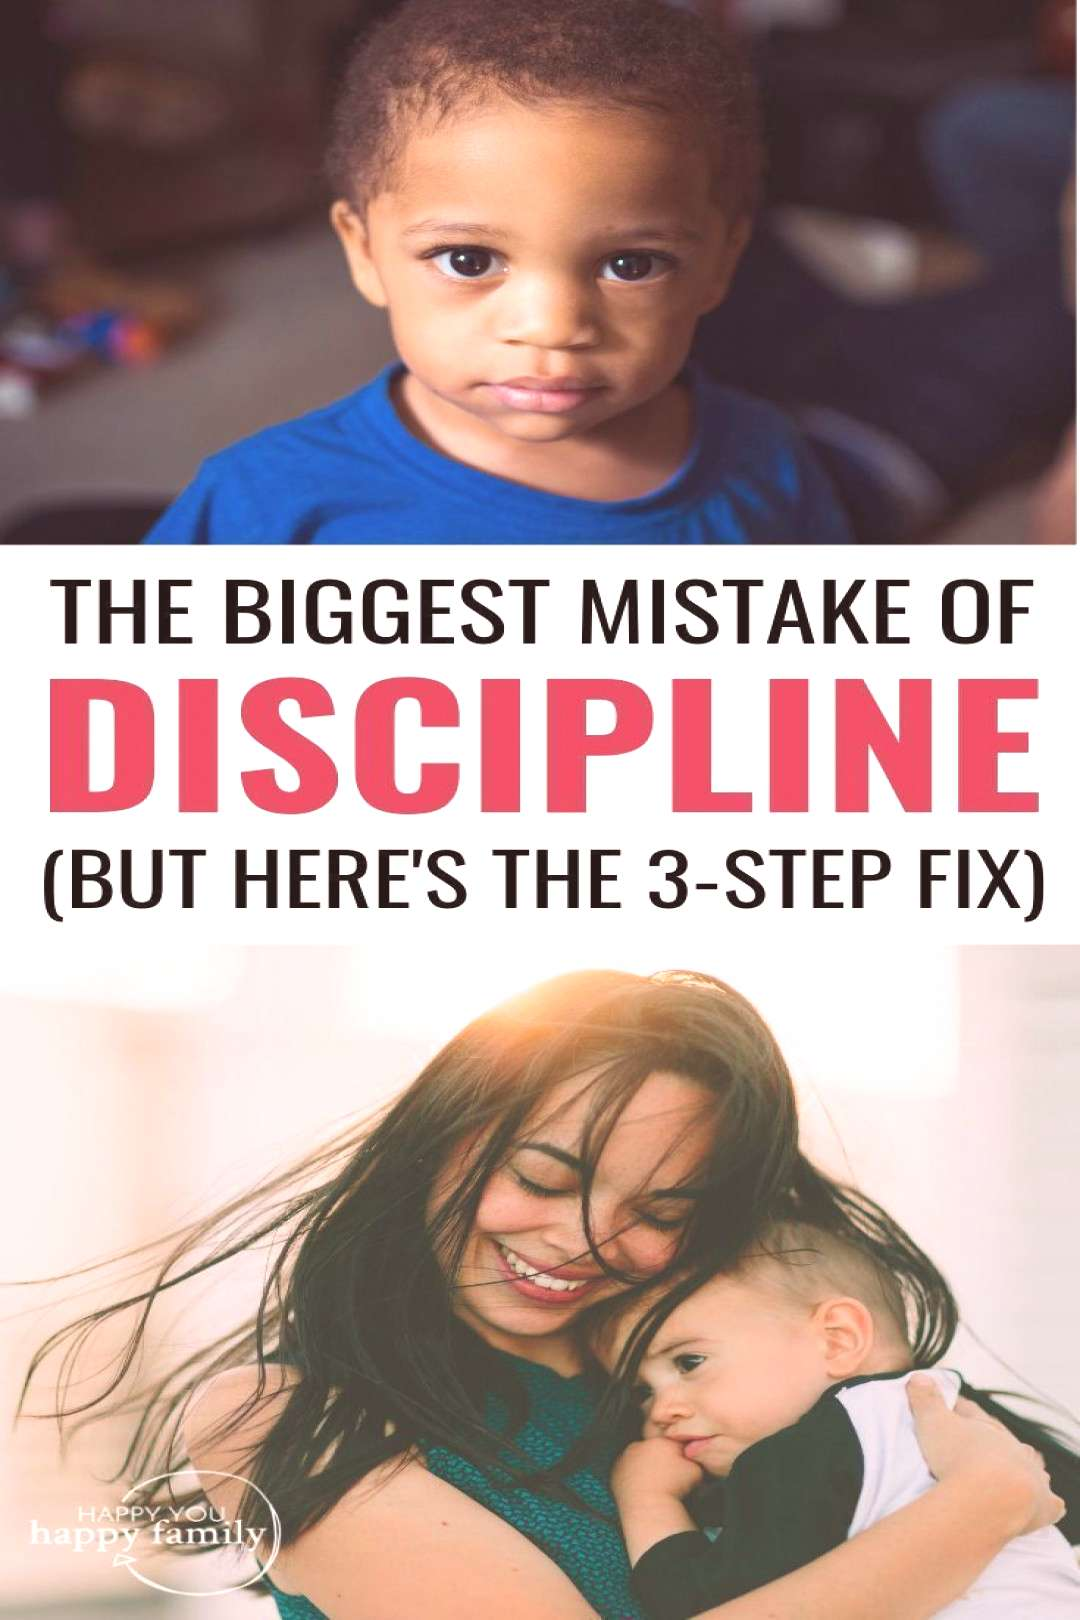 When you discipline your child, this is what hurts the most When you discipline your child, this is